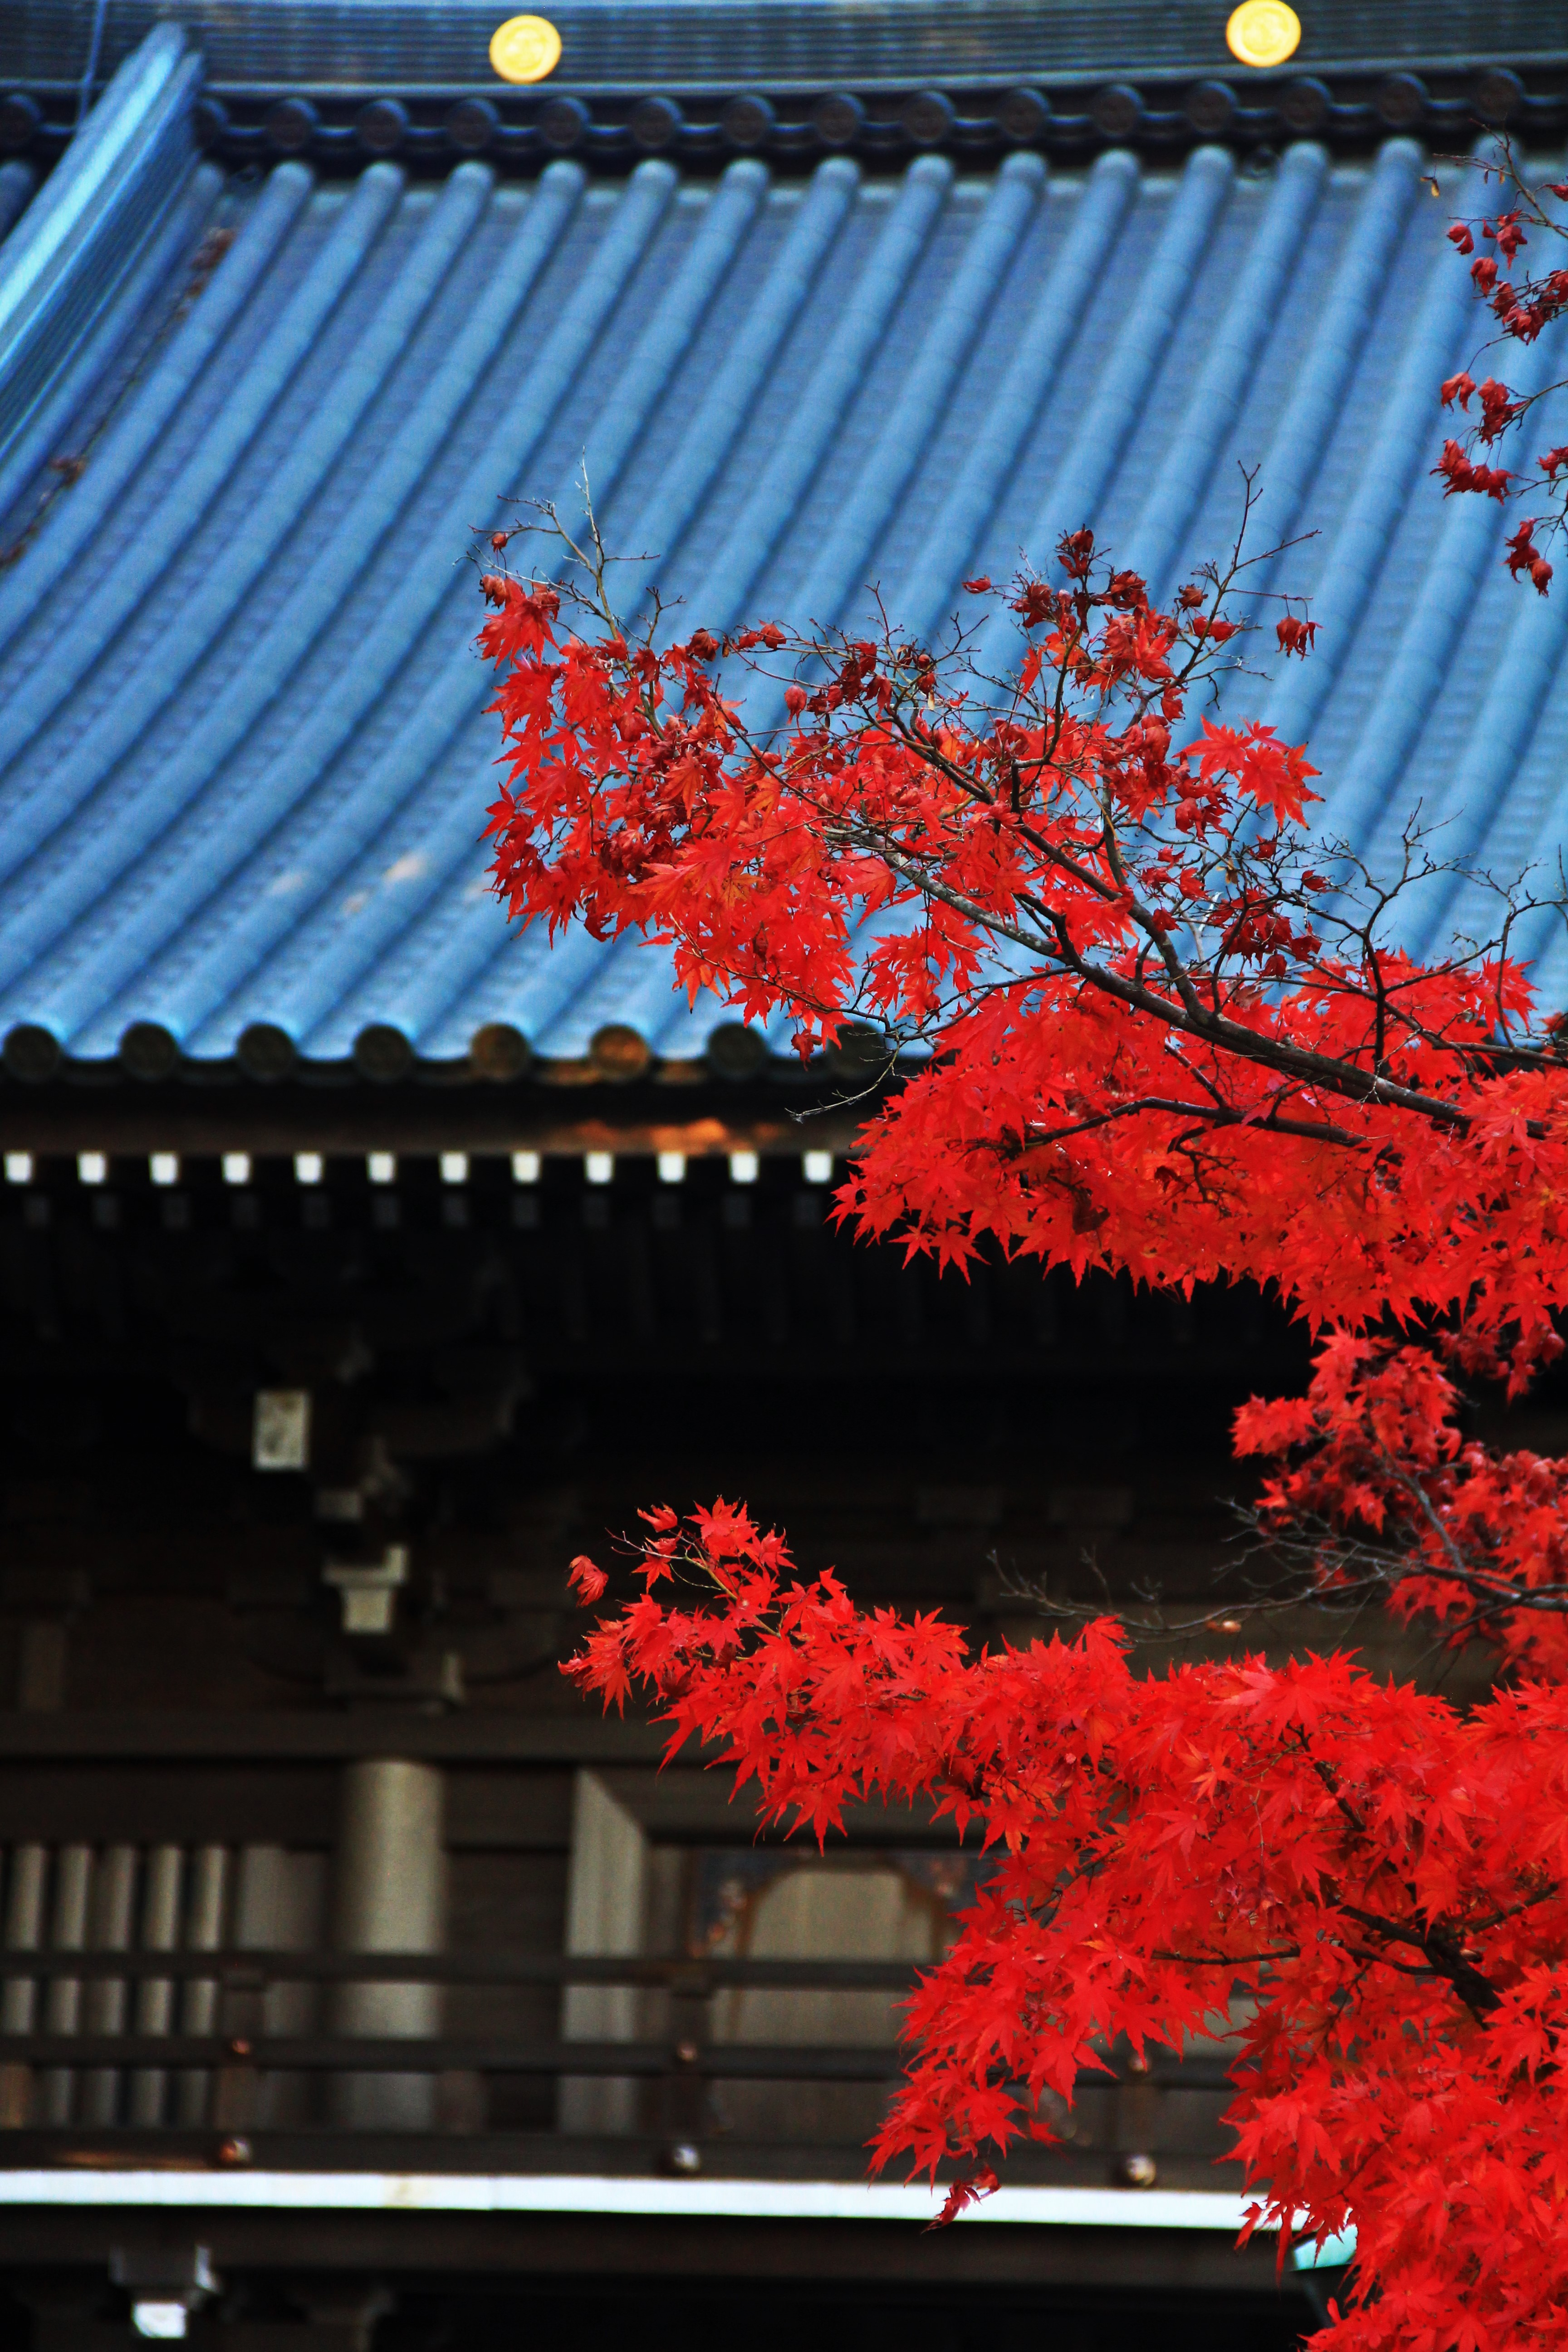 山寺紅葉 temple and flame-red maple